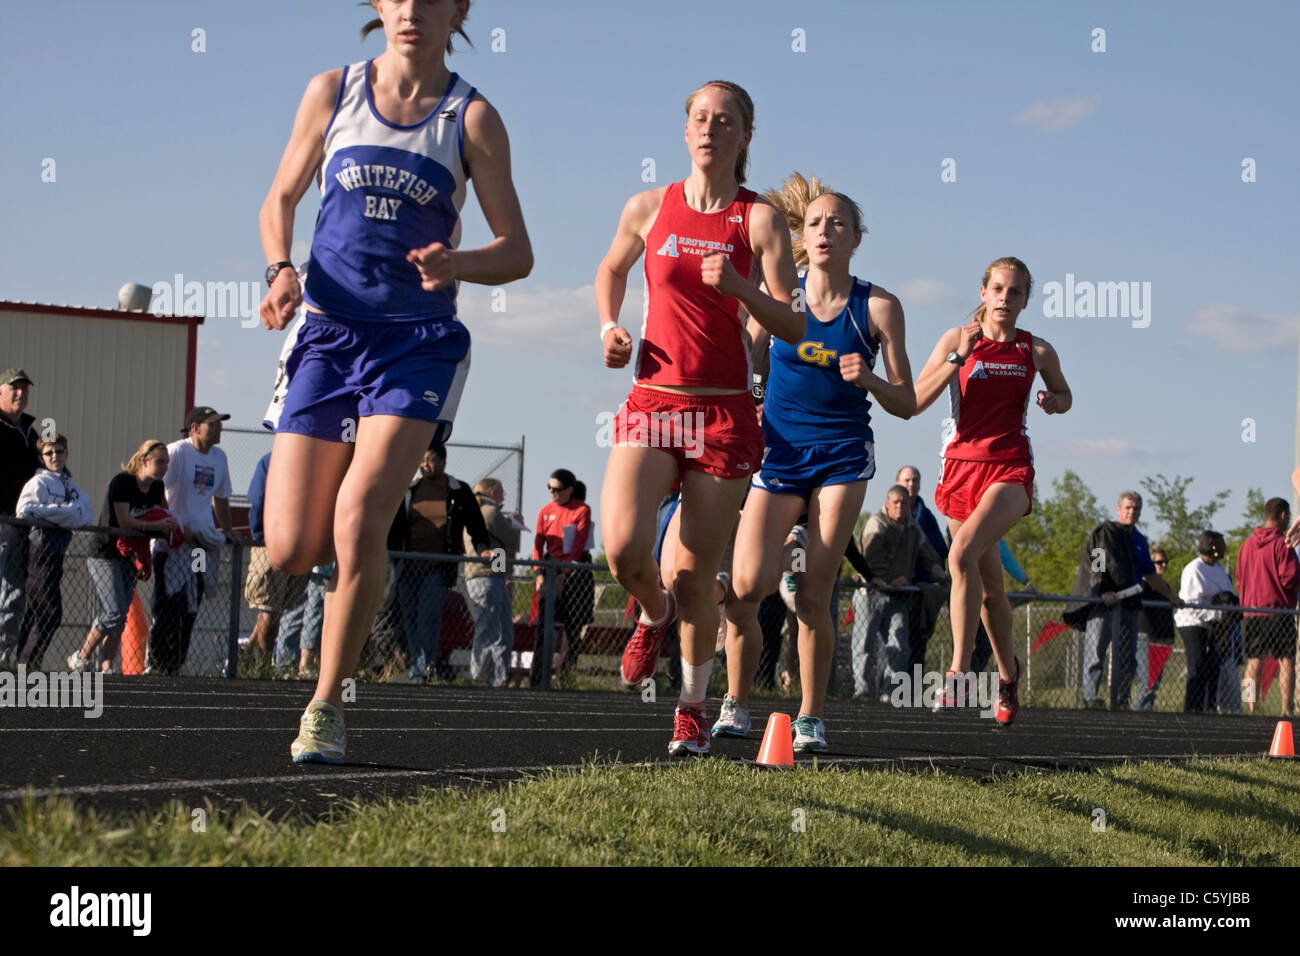 High school girls round the last turn at a sectional track meet in Wisconsin. - Stock Image